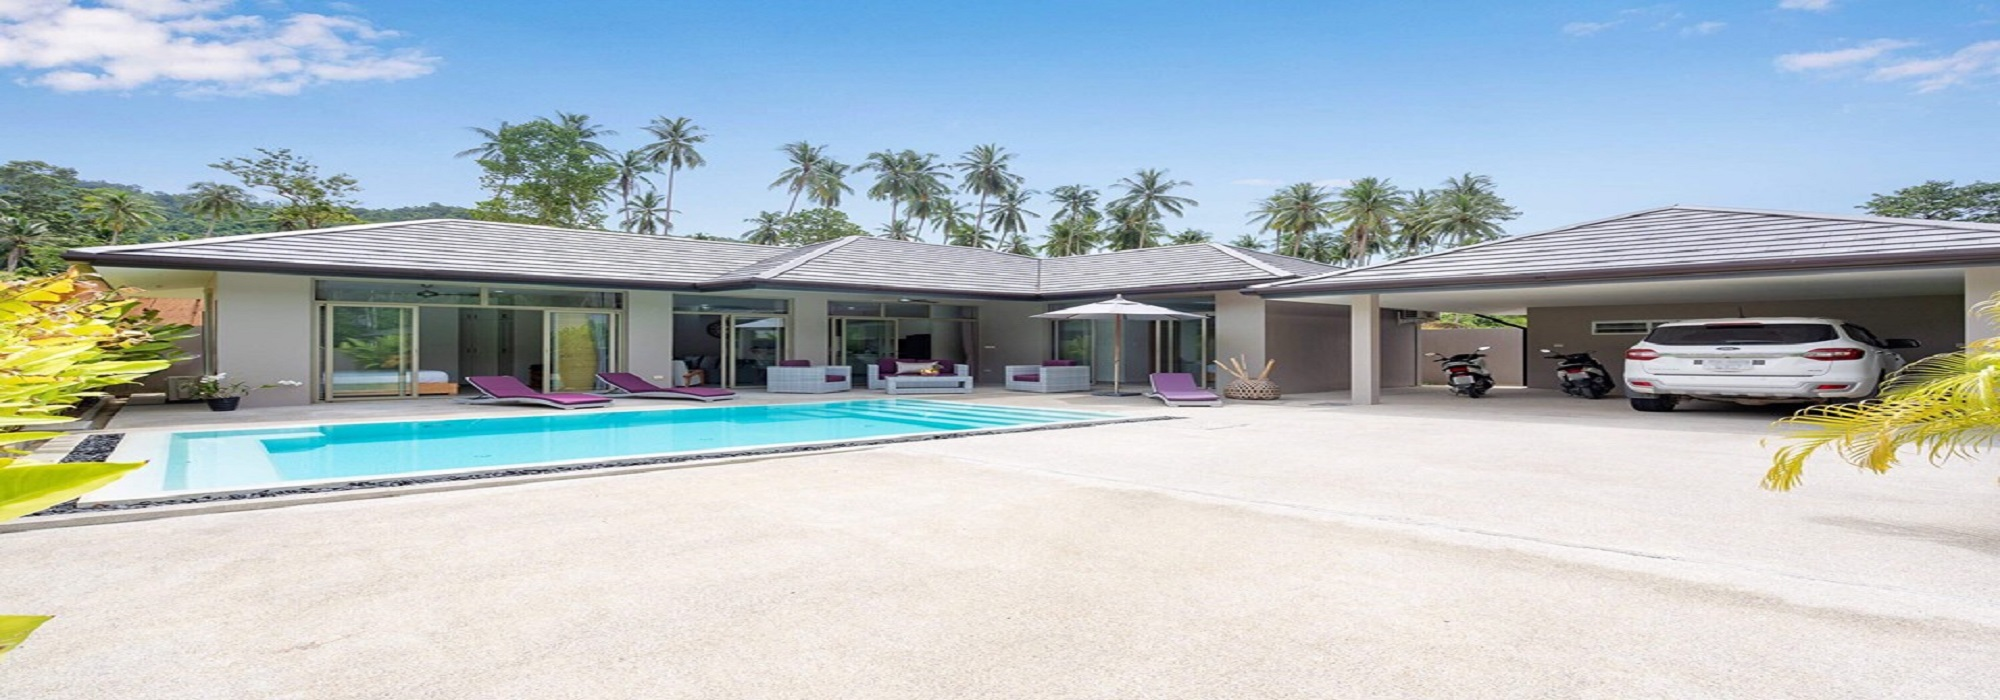 For sale Residence Lamai Koh Samui - 4 villas with private pool